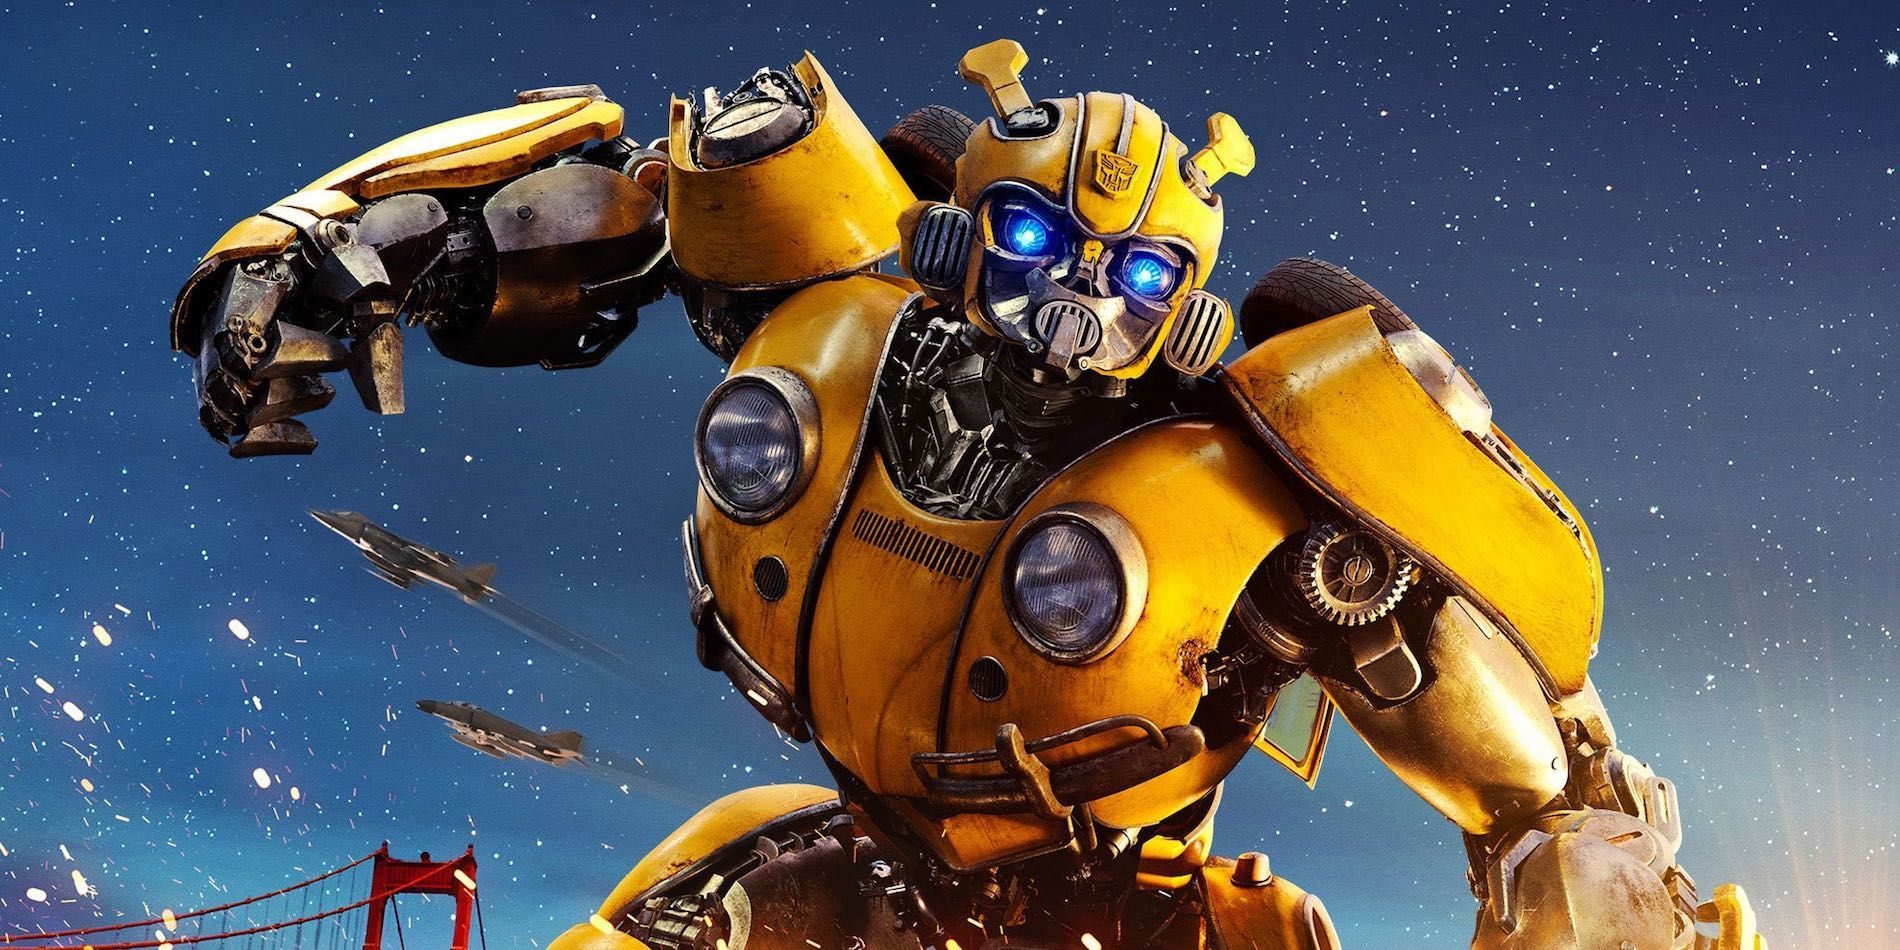 bumblebee 10 hidden details only true transformers fans